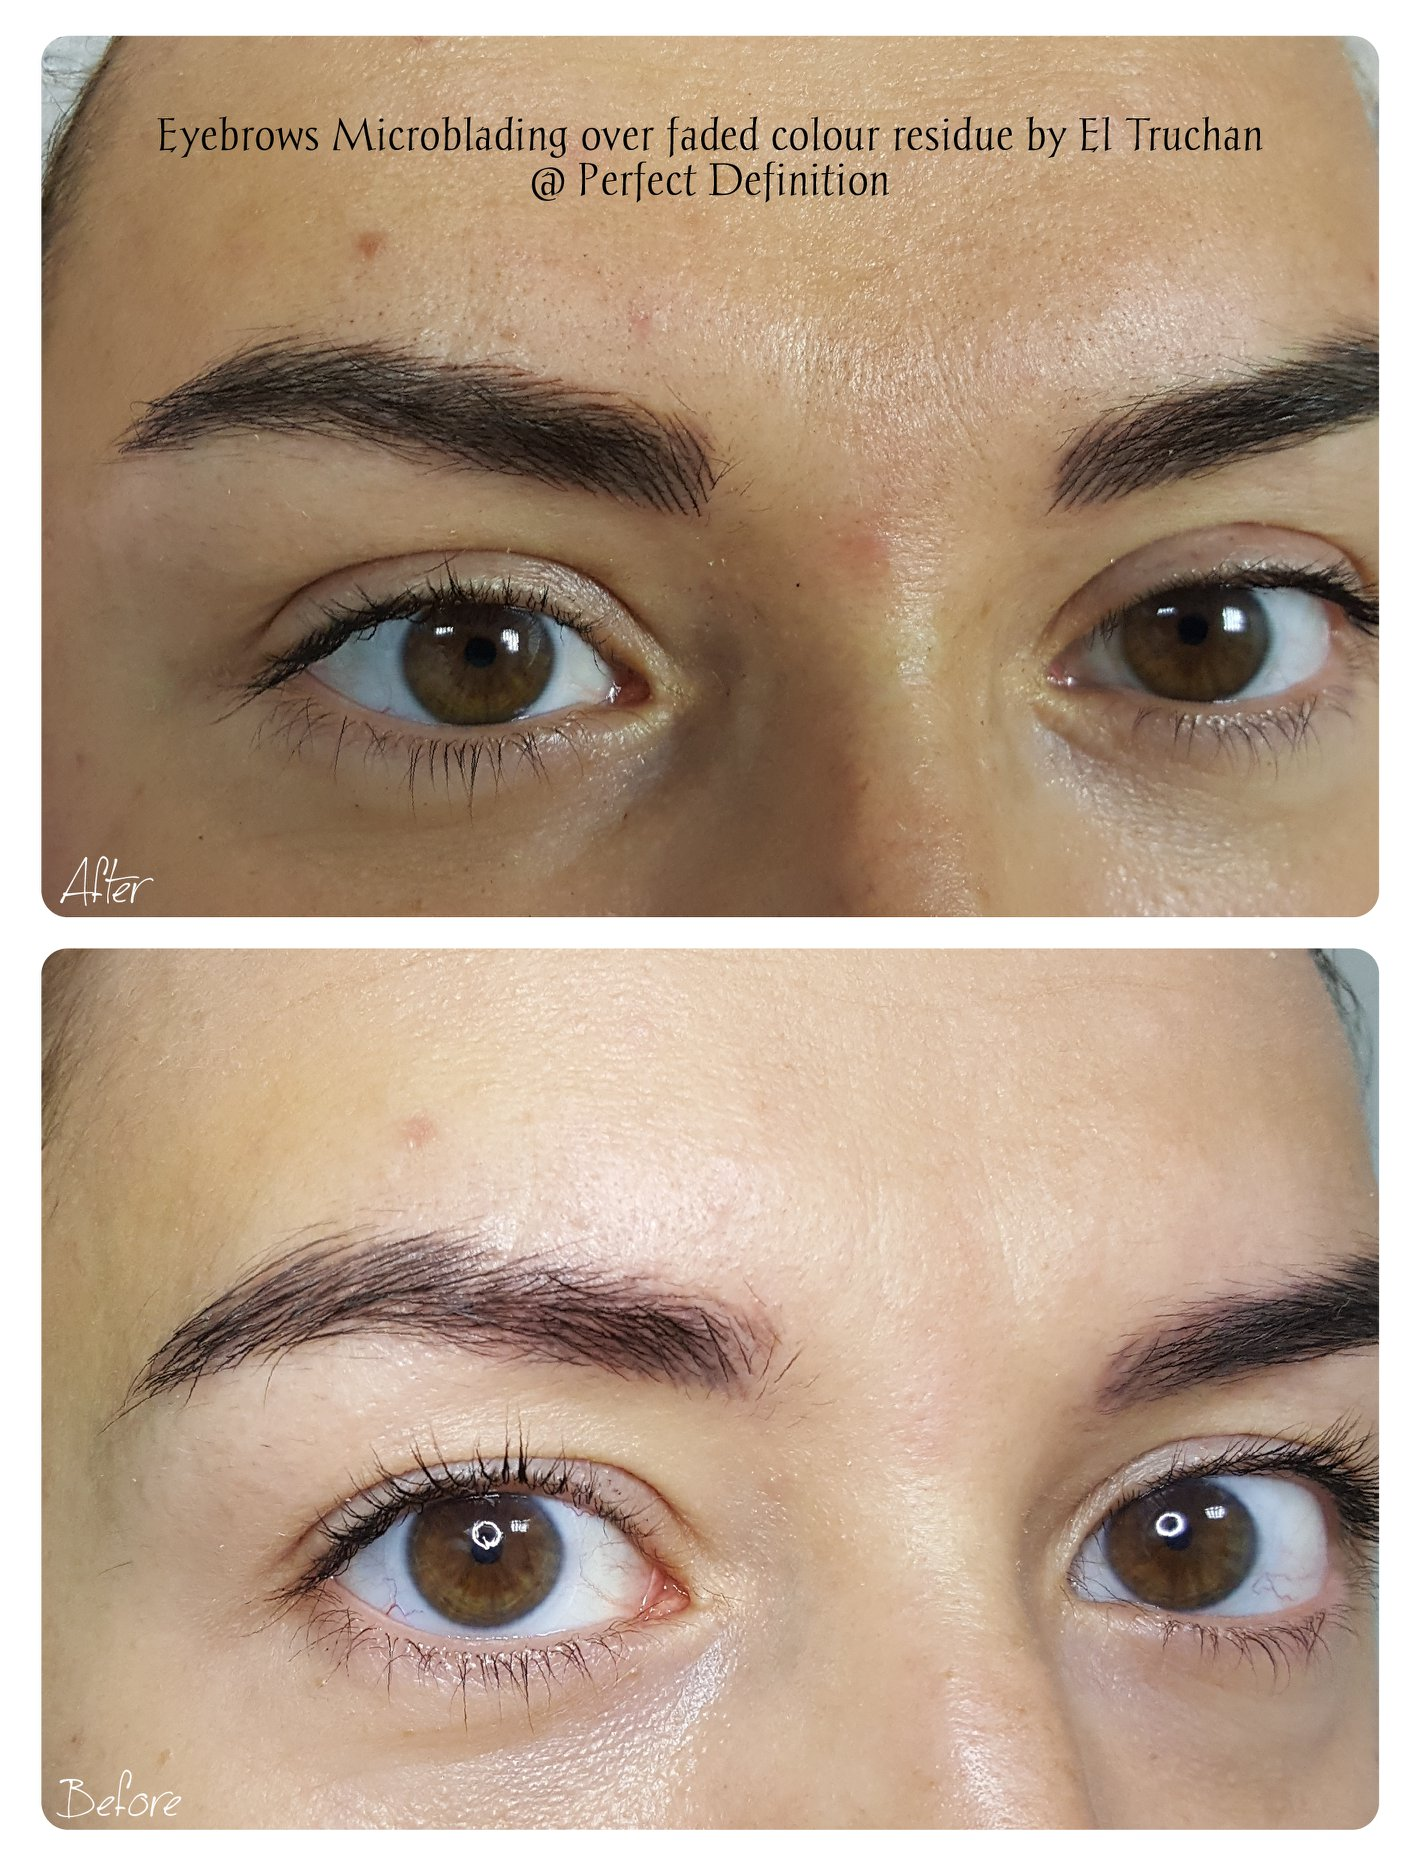 Eyebrows Microblading over faded colour